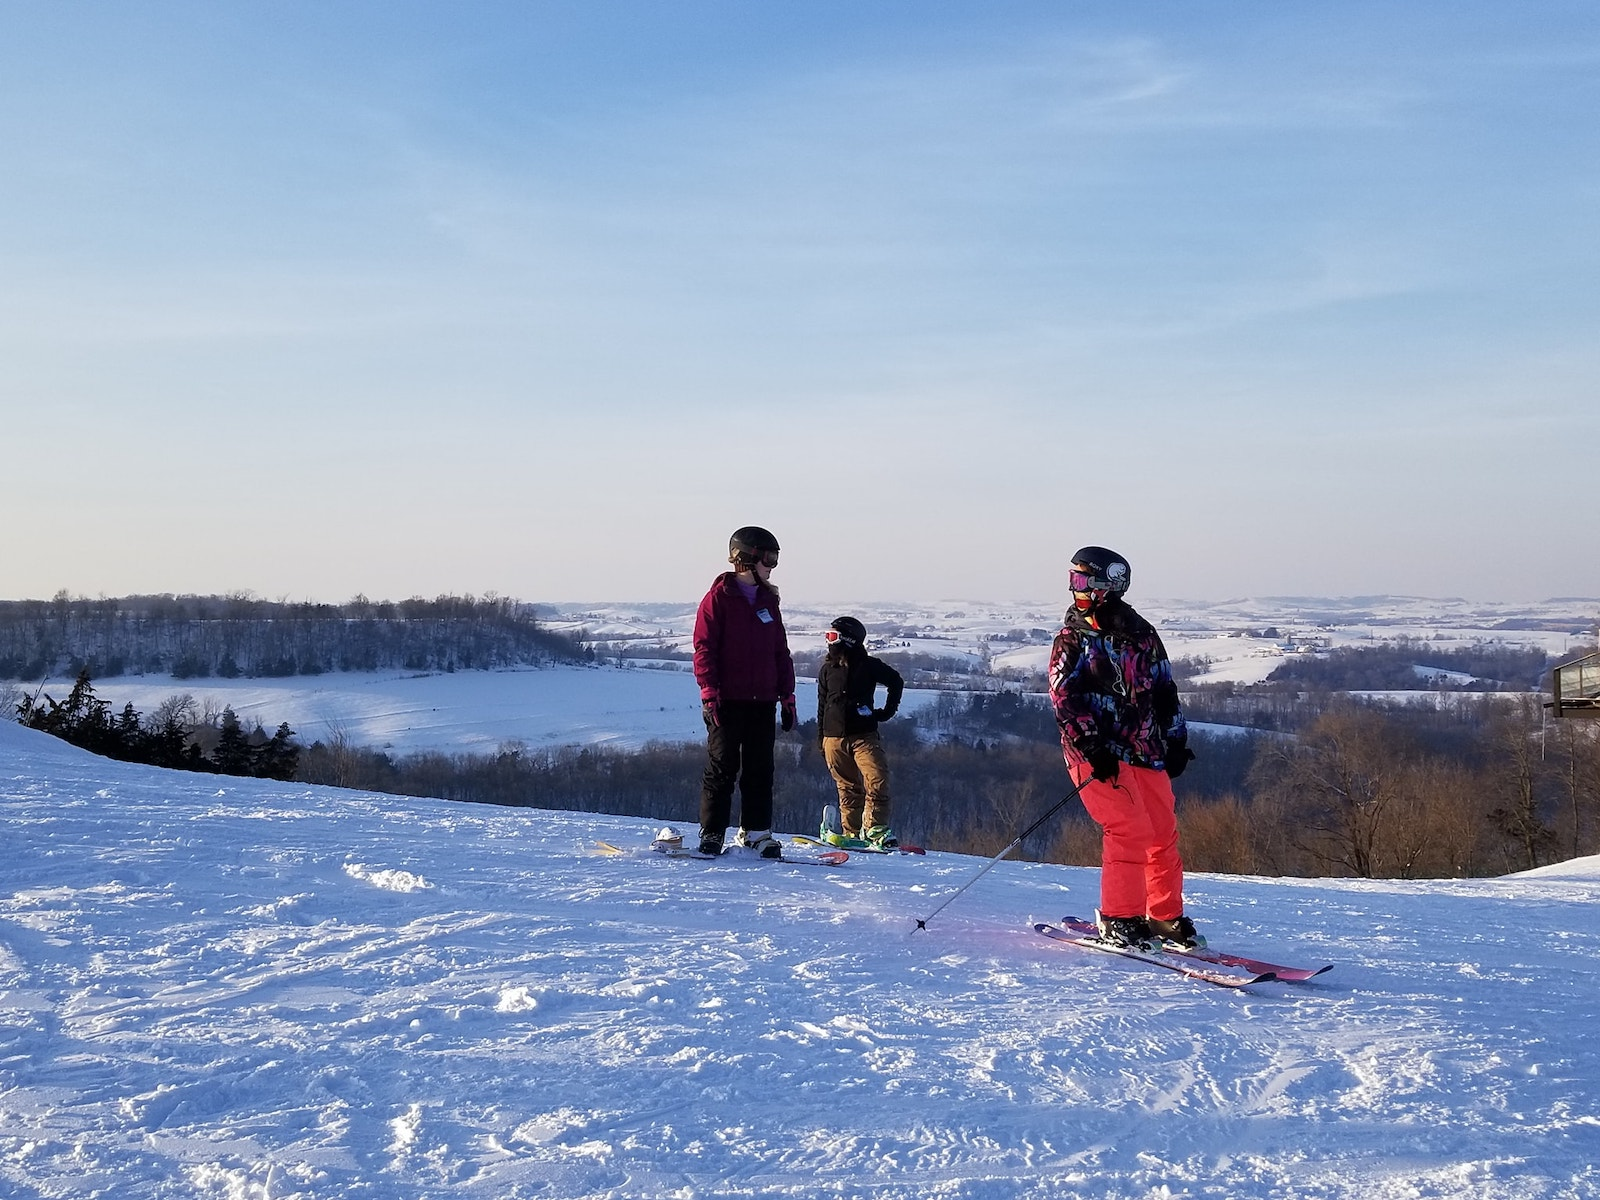 Image of three skiers and the top of the slope at Sundown Mountain Resort in Iowa